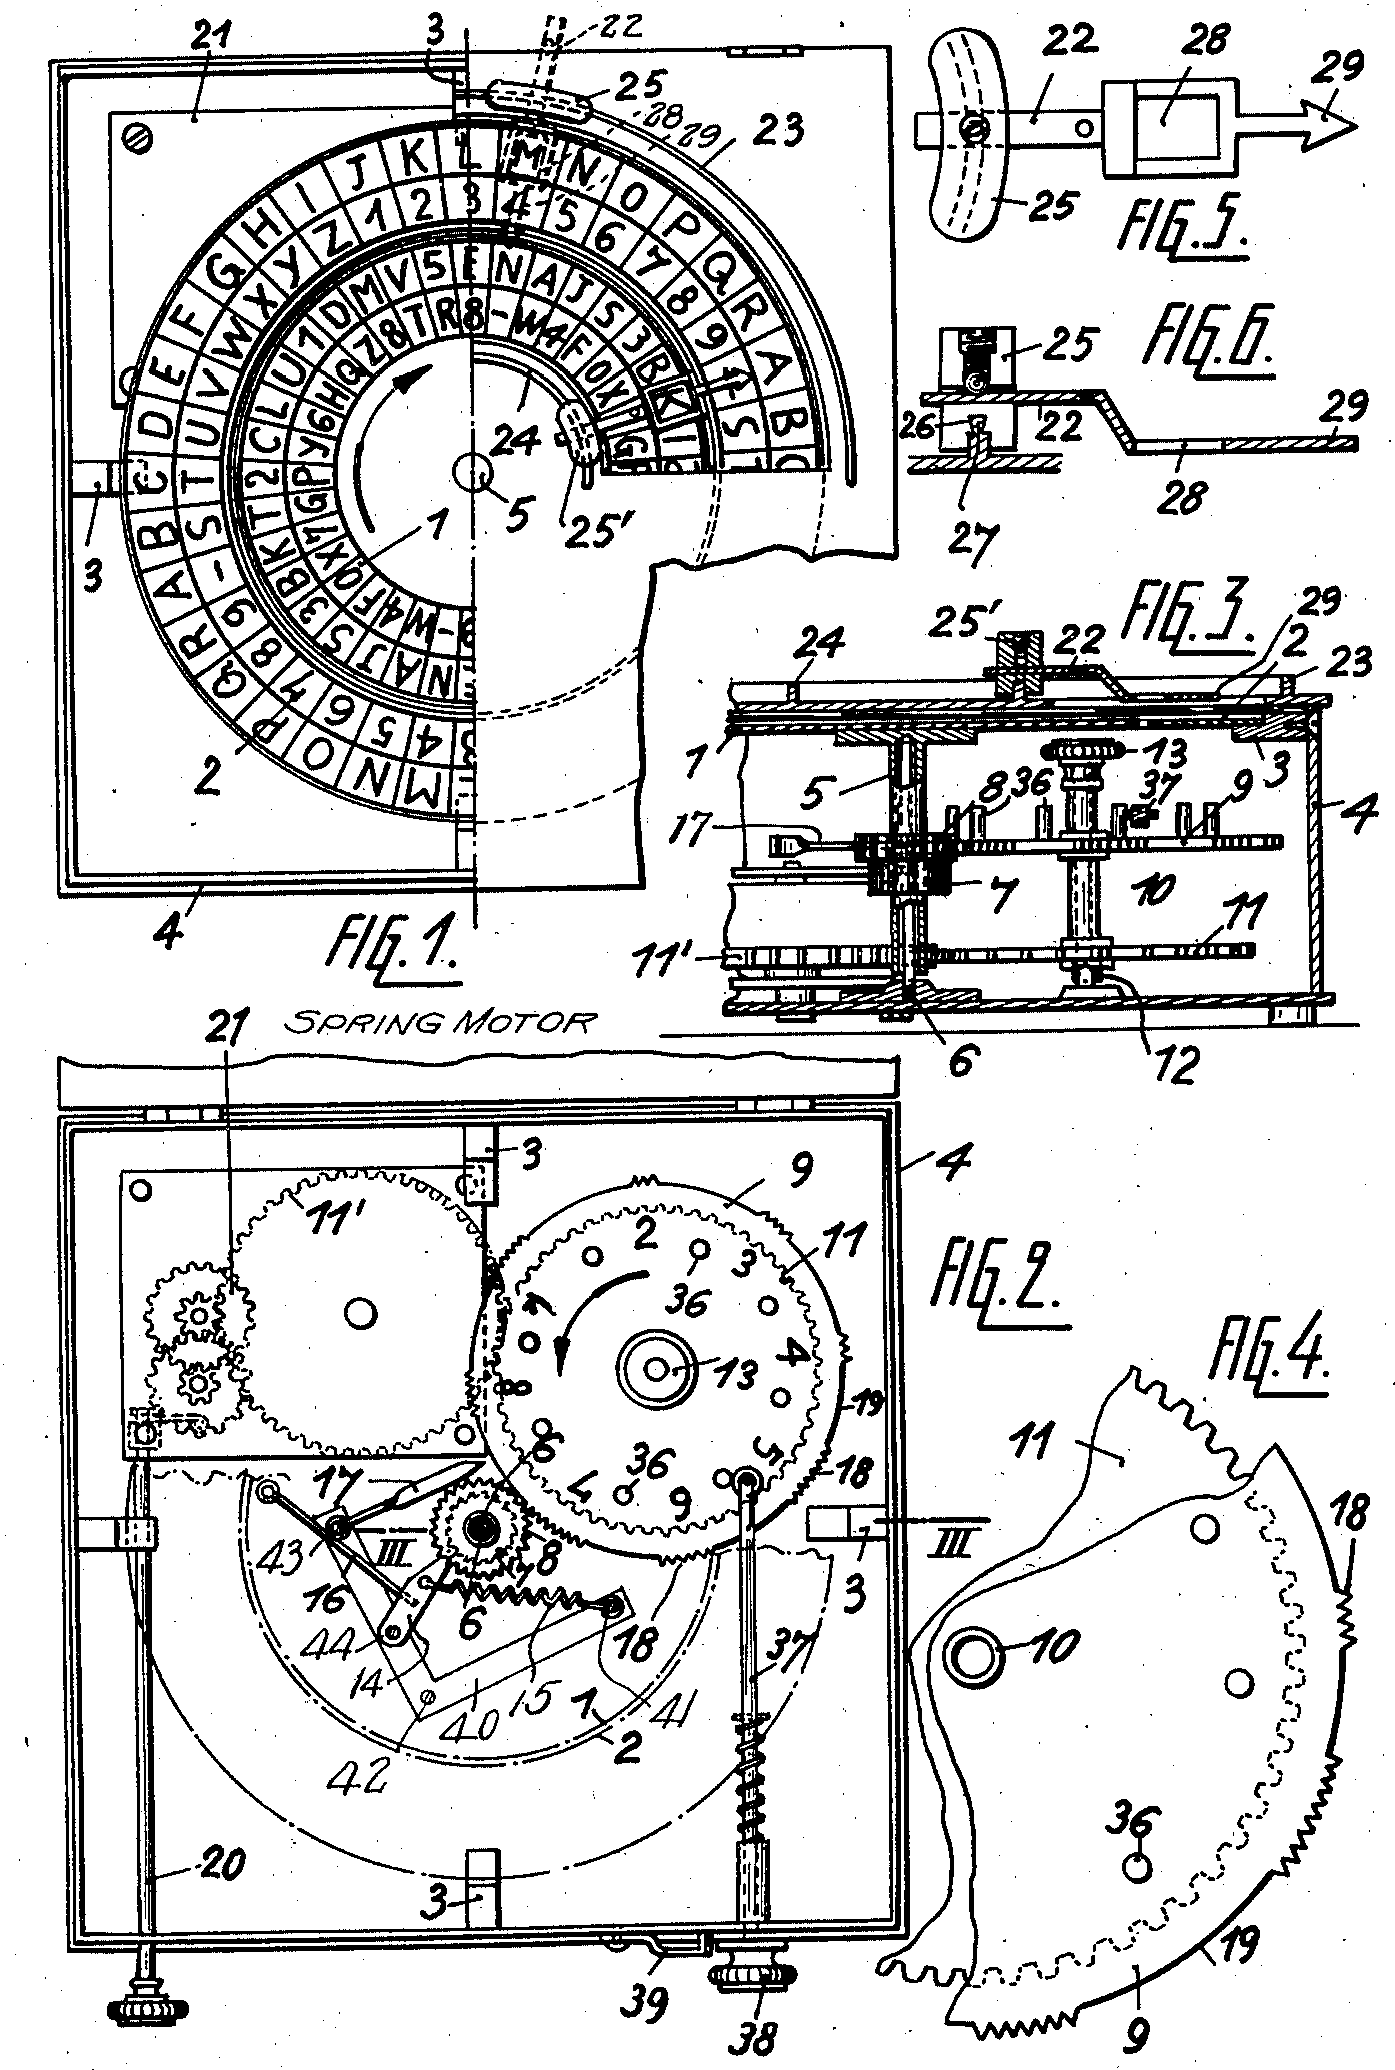 http://upload.wikimedia.org/wikipedia/commons/0/0a/Kryha-patent.png